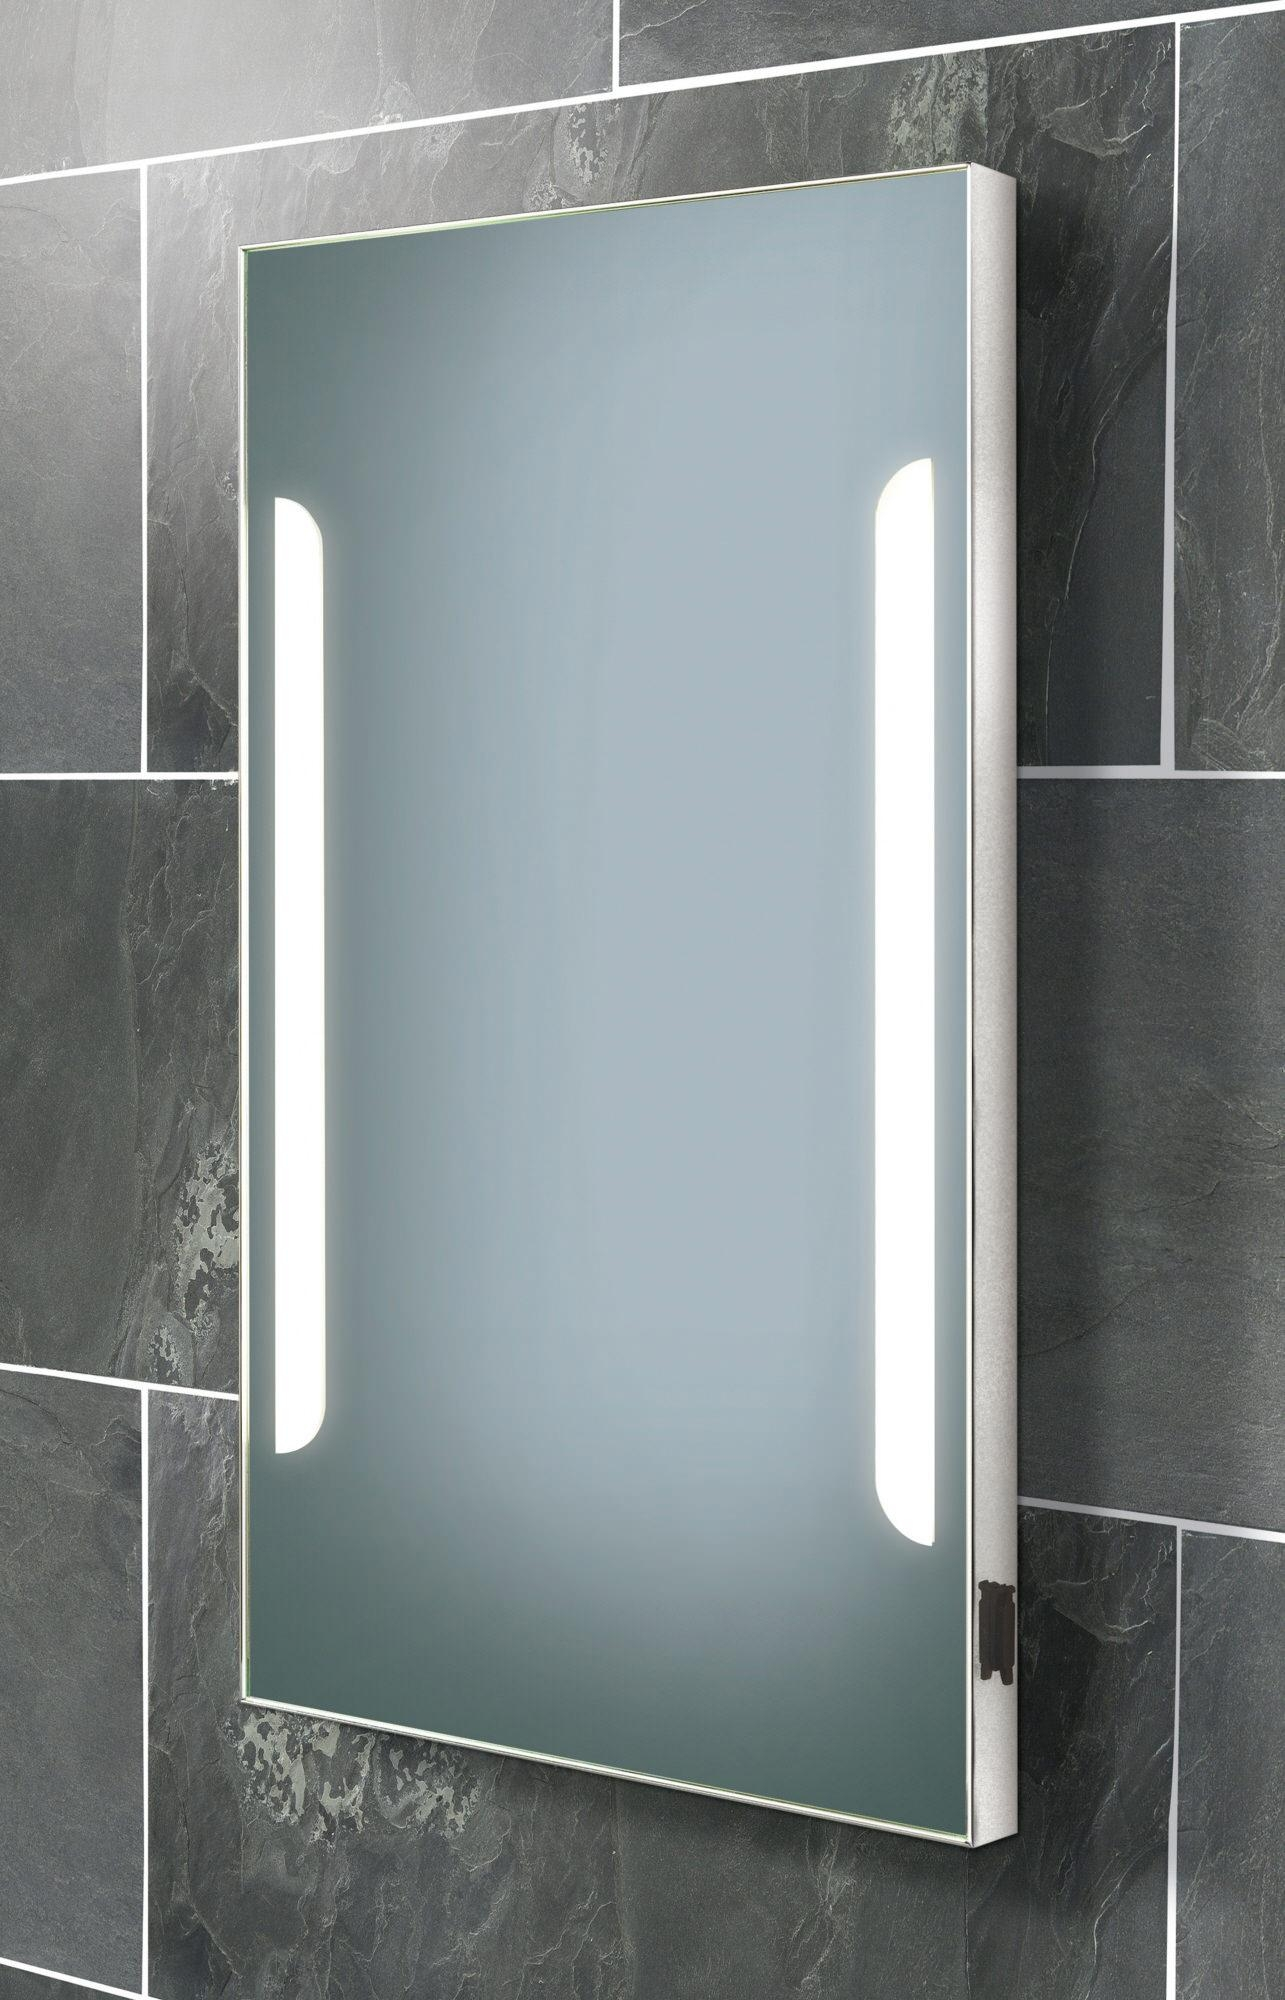 Bathroom : Beautiful Countertop Makeup Mirrors With Light Backlit Throughout Vanity Mirrors With Built In Lights (Image 1 of 20)